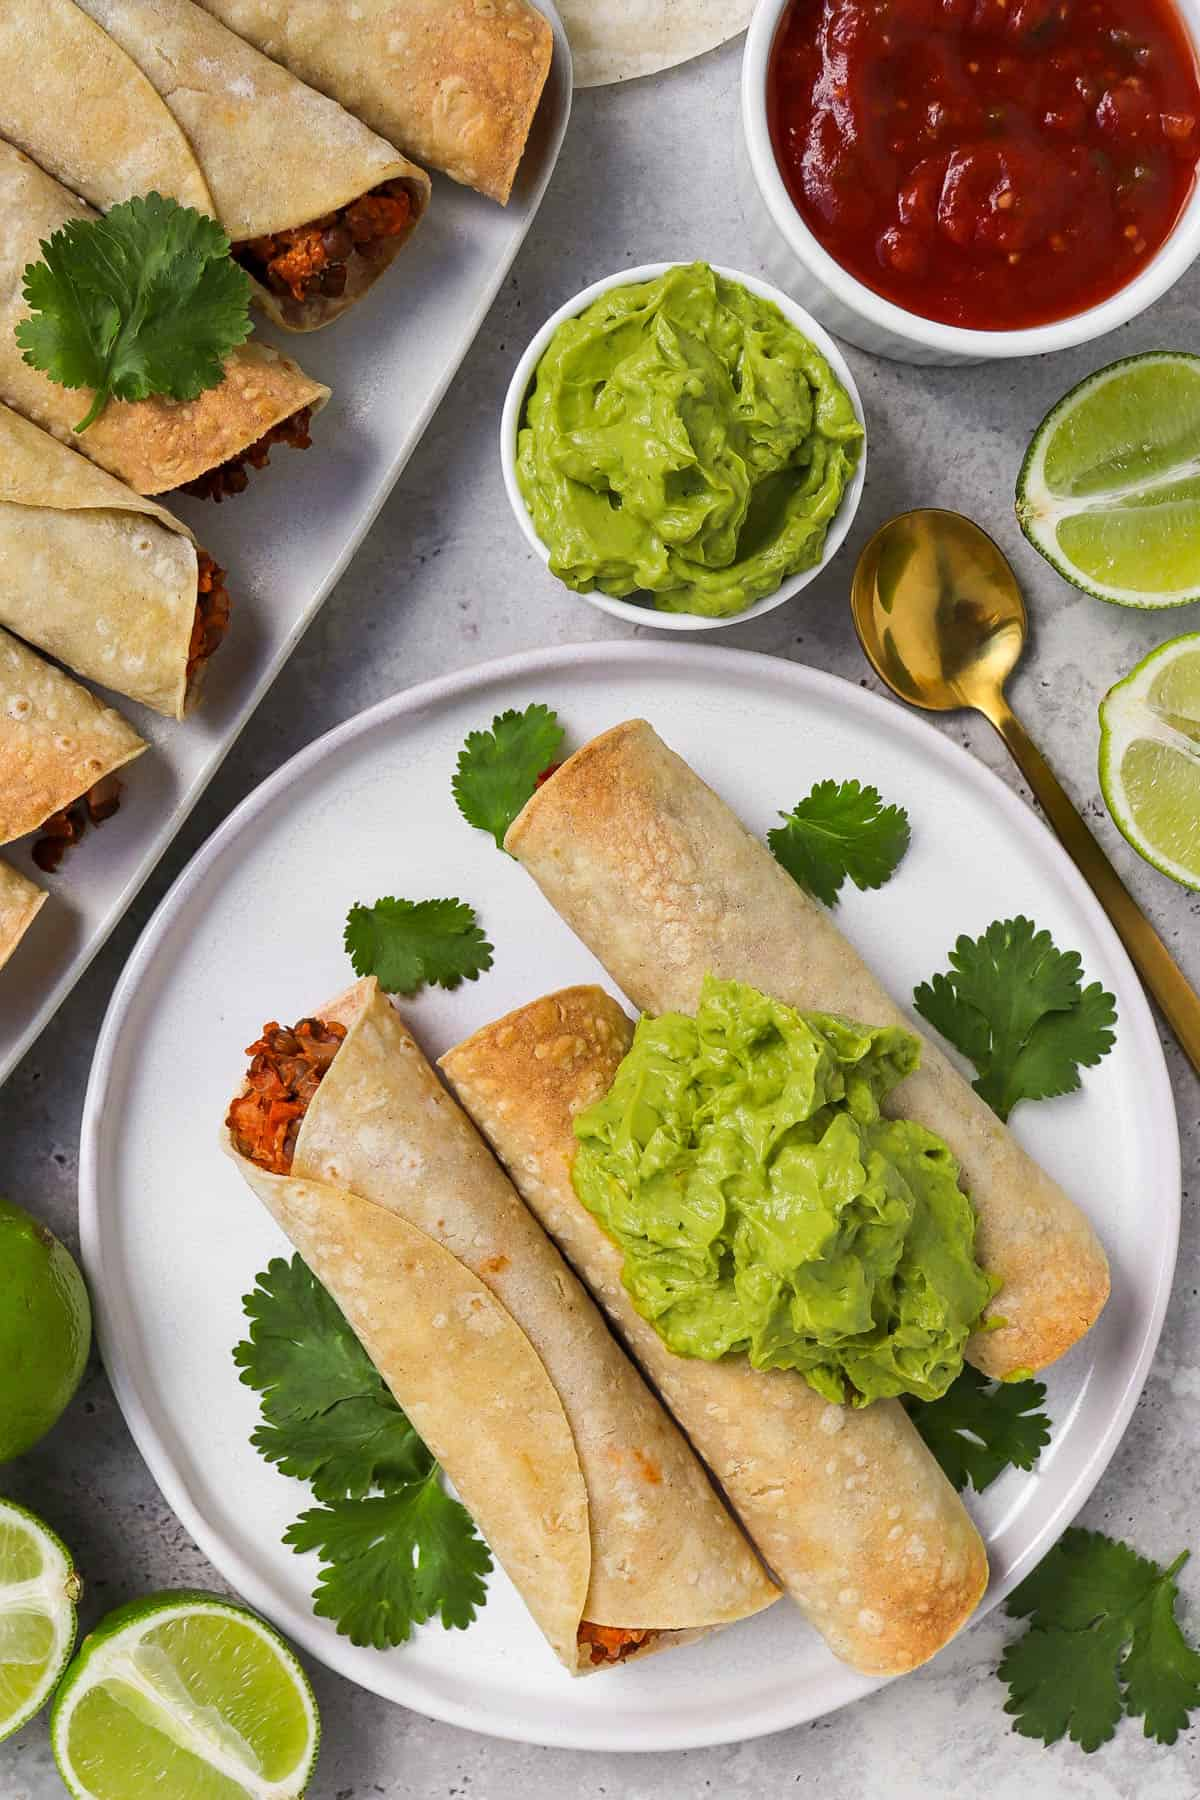 Taquitos served on plate on the side topped with guacamole.